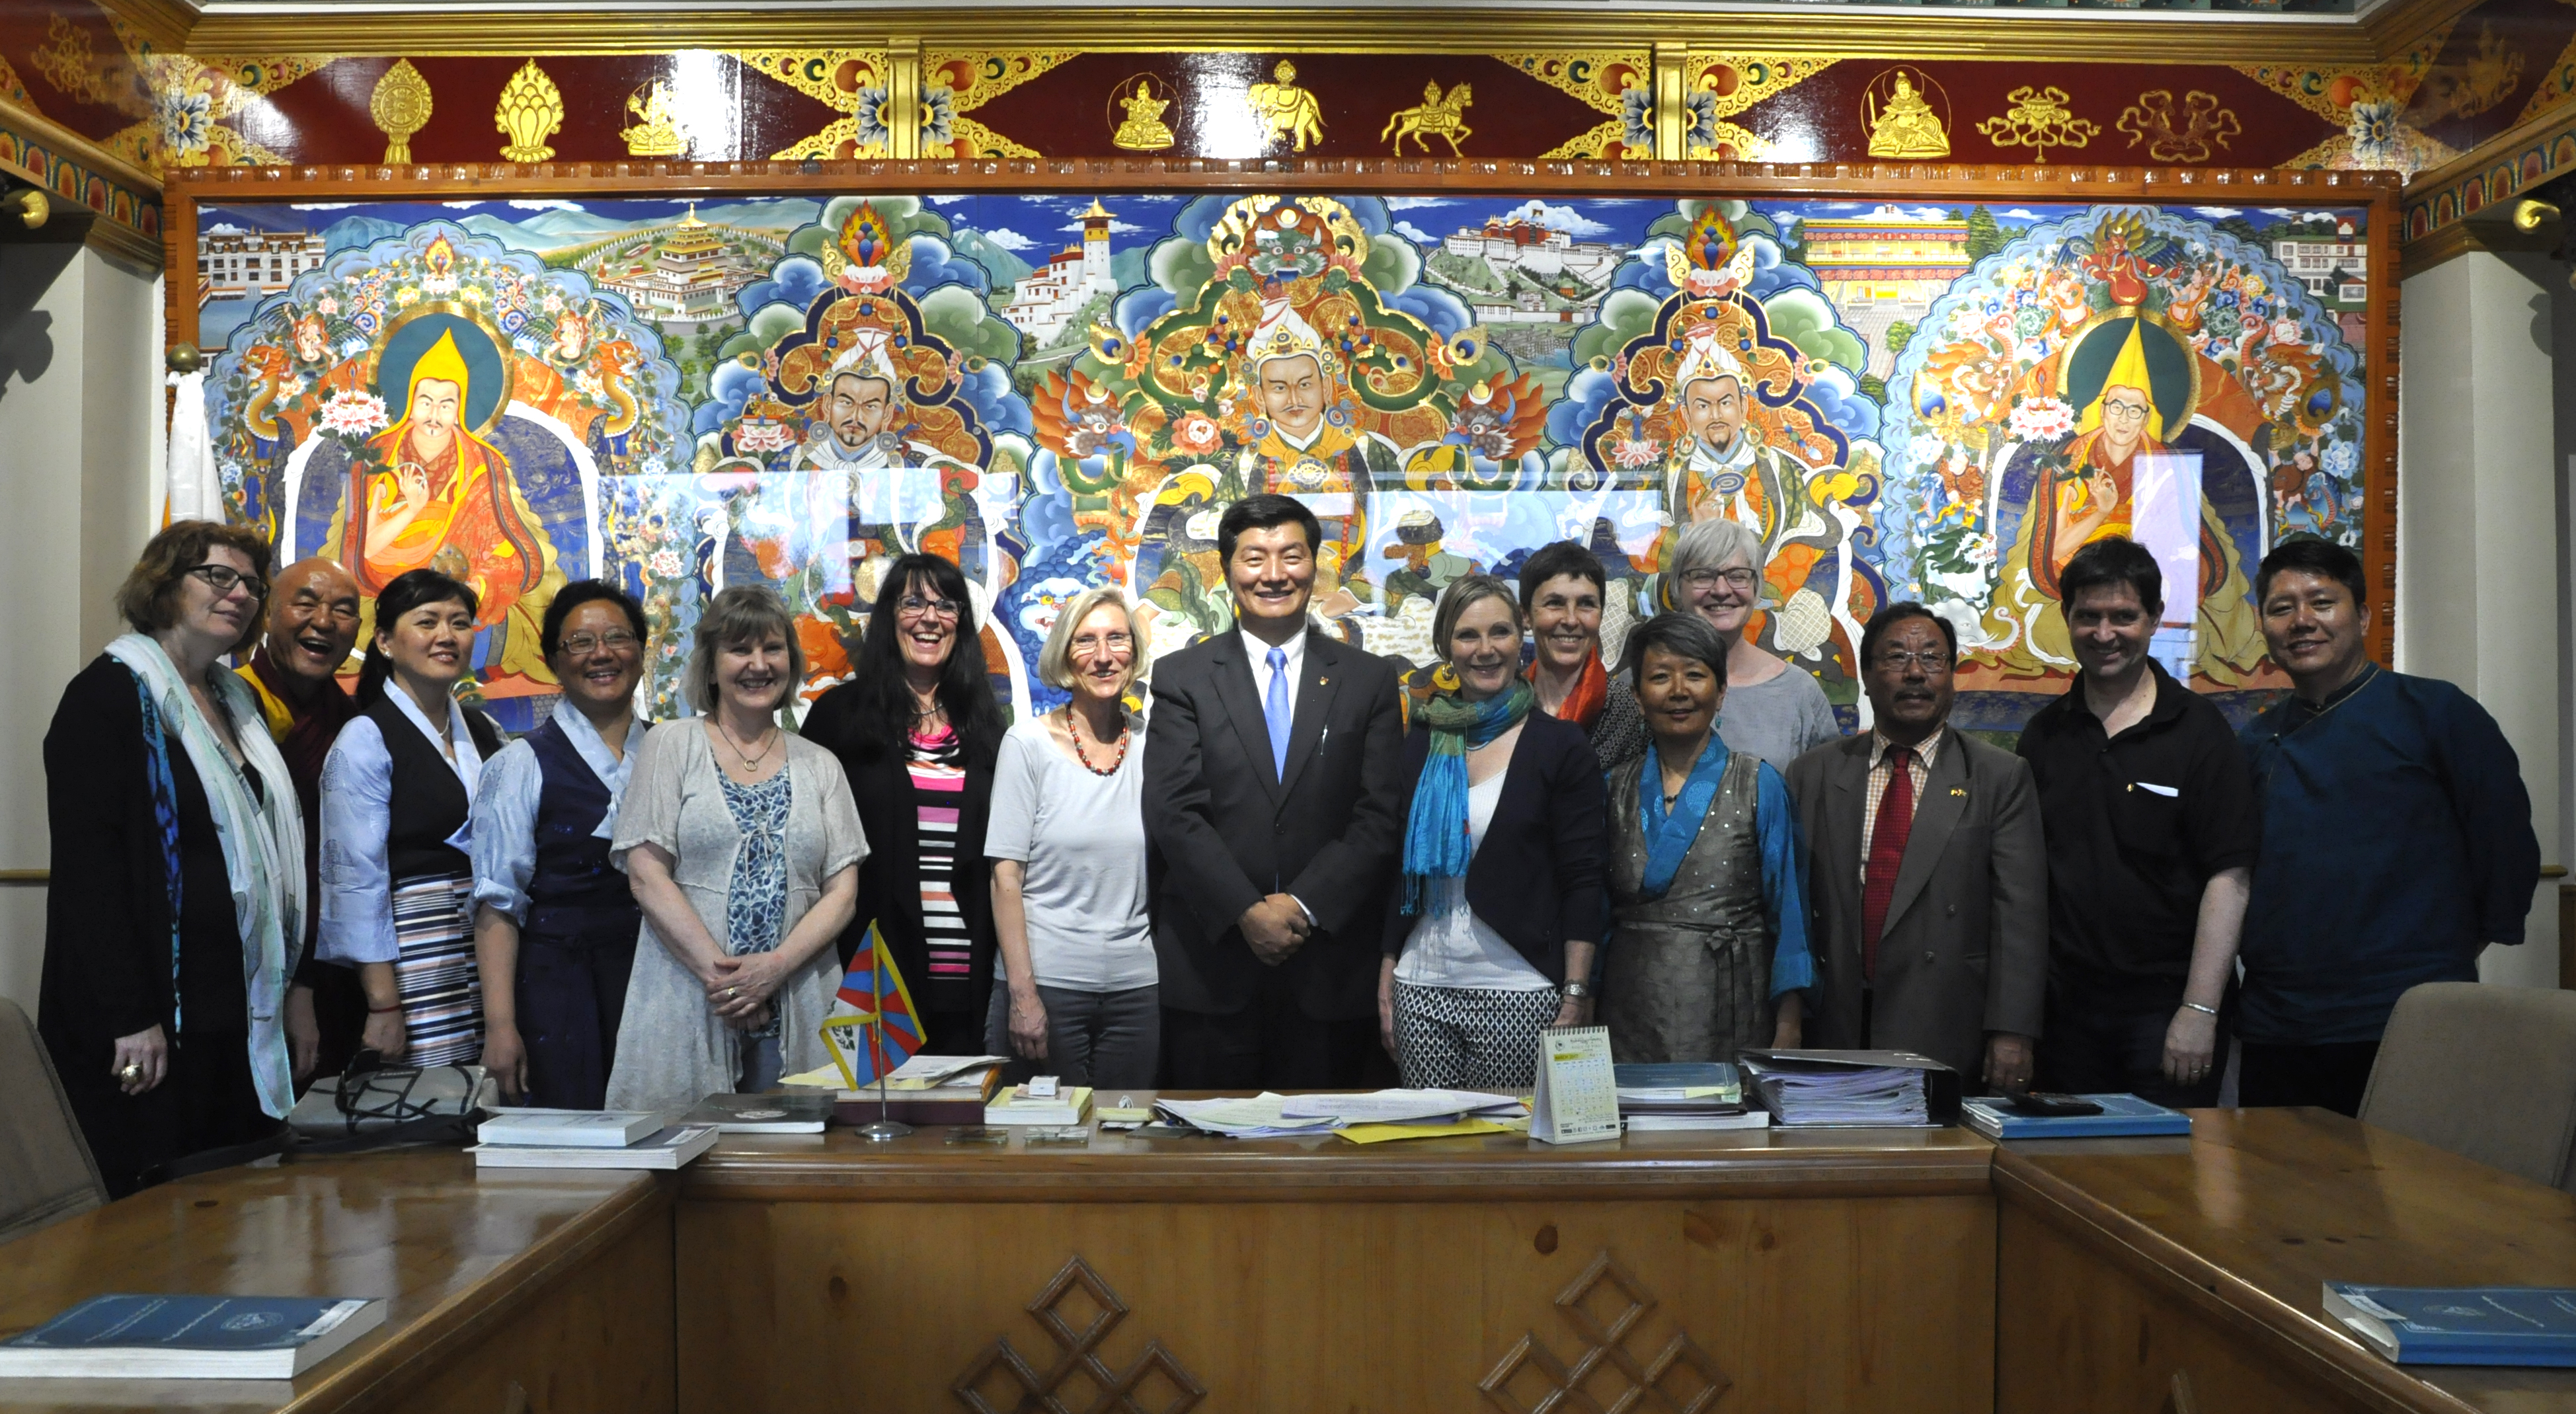 Sikyong Dr Lobsang Sangay with the swiss parliamentary delegation, members of Tibetan parliament from Europe, Ven Thupten Wangchen and Samdho, President and board members of Swiss Tibet Friendship and representative of Tibetan community in Switzerland and Li